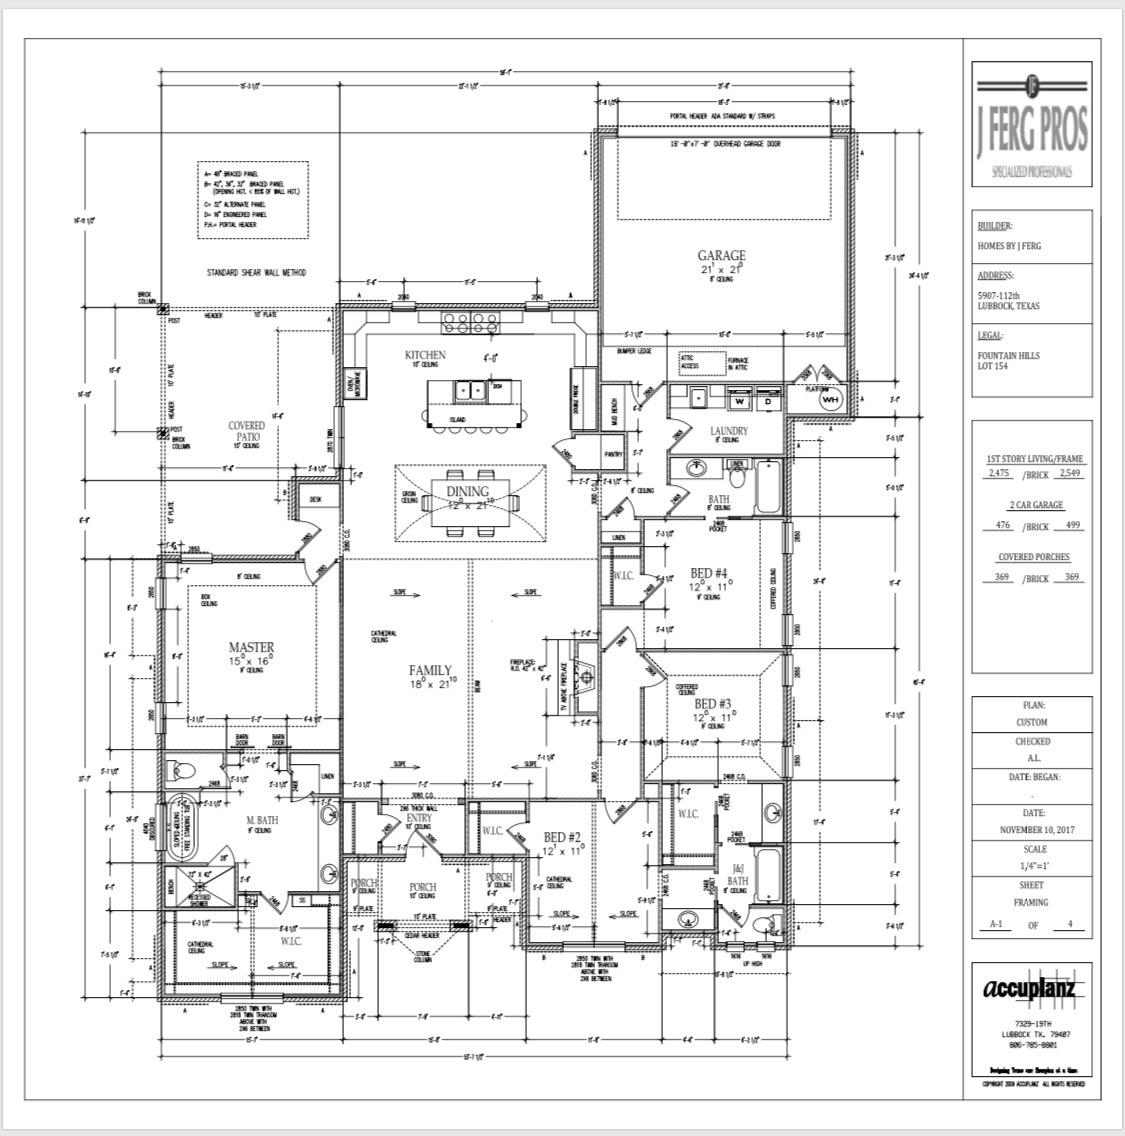 Home to start construction soon! Buyer may make all selections. Contact listing agent soon to get started!